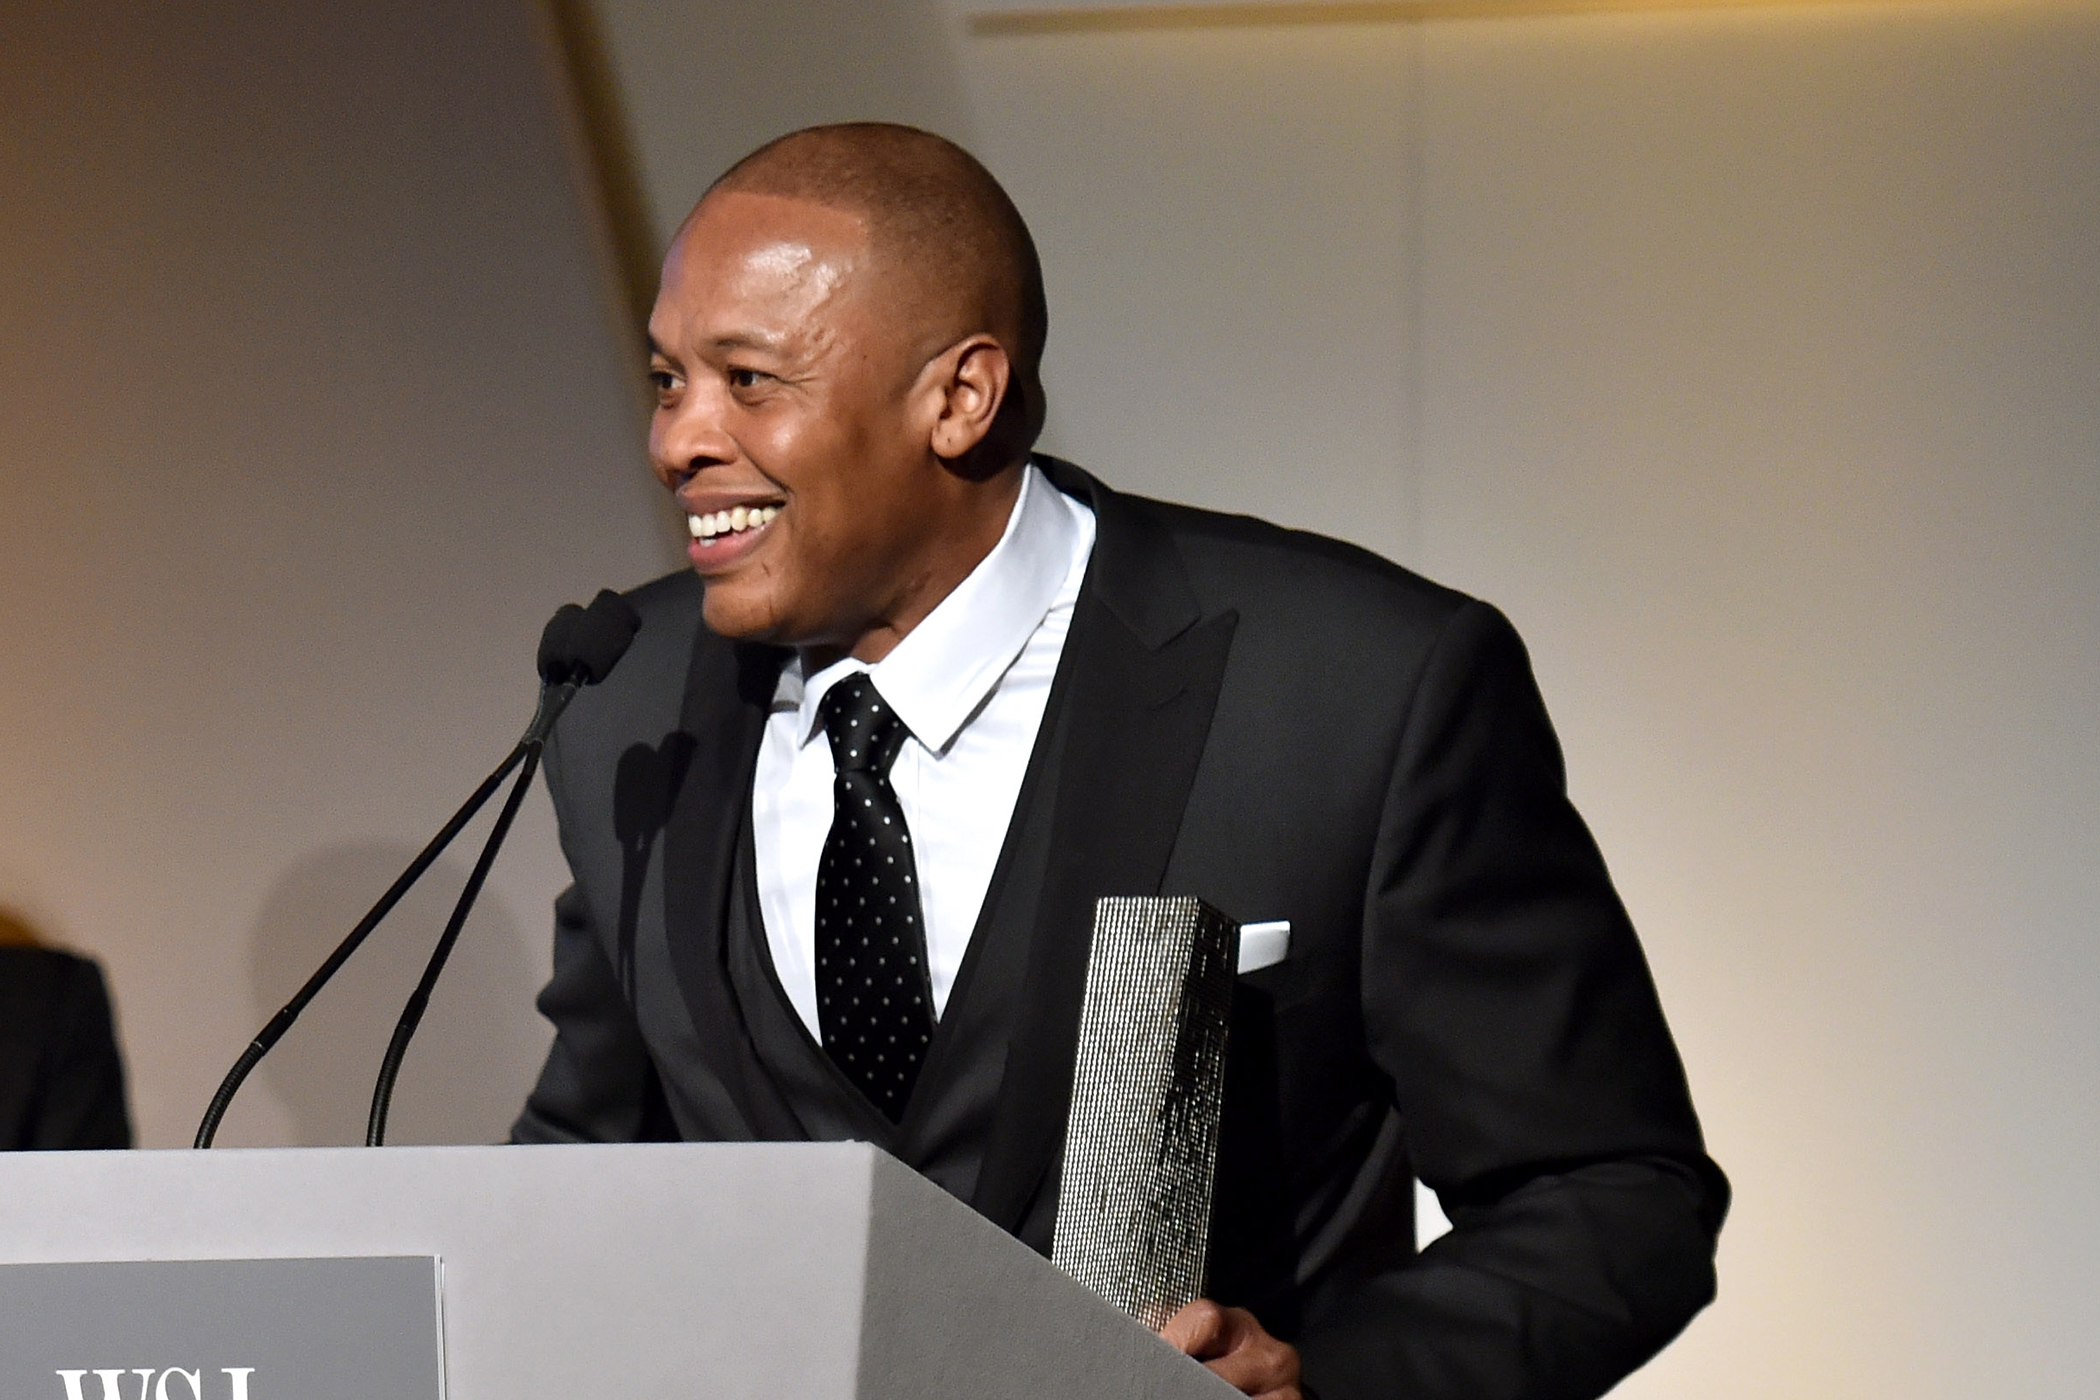 Dr. Dre speaks onstage at WSJ. Magazine's  Innovator Of The Year  Awards at Museum of Modern Art on November 5, 2014 in New York City.